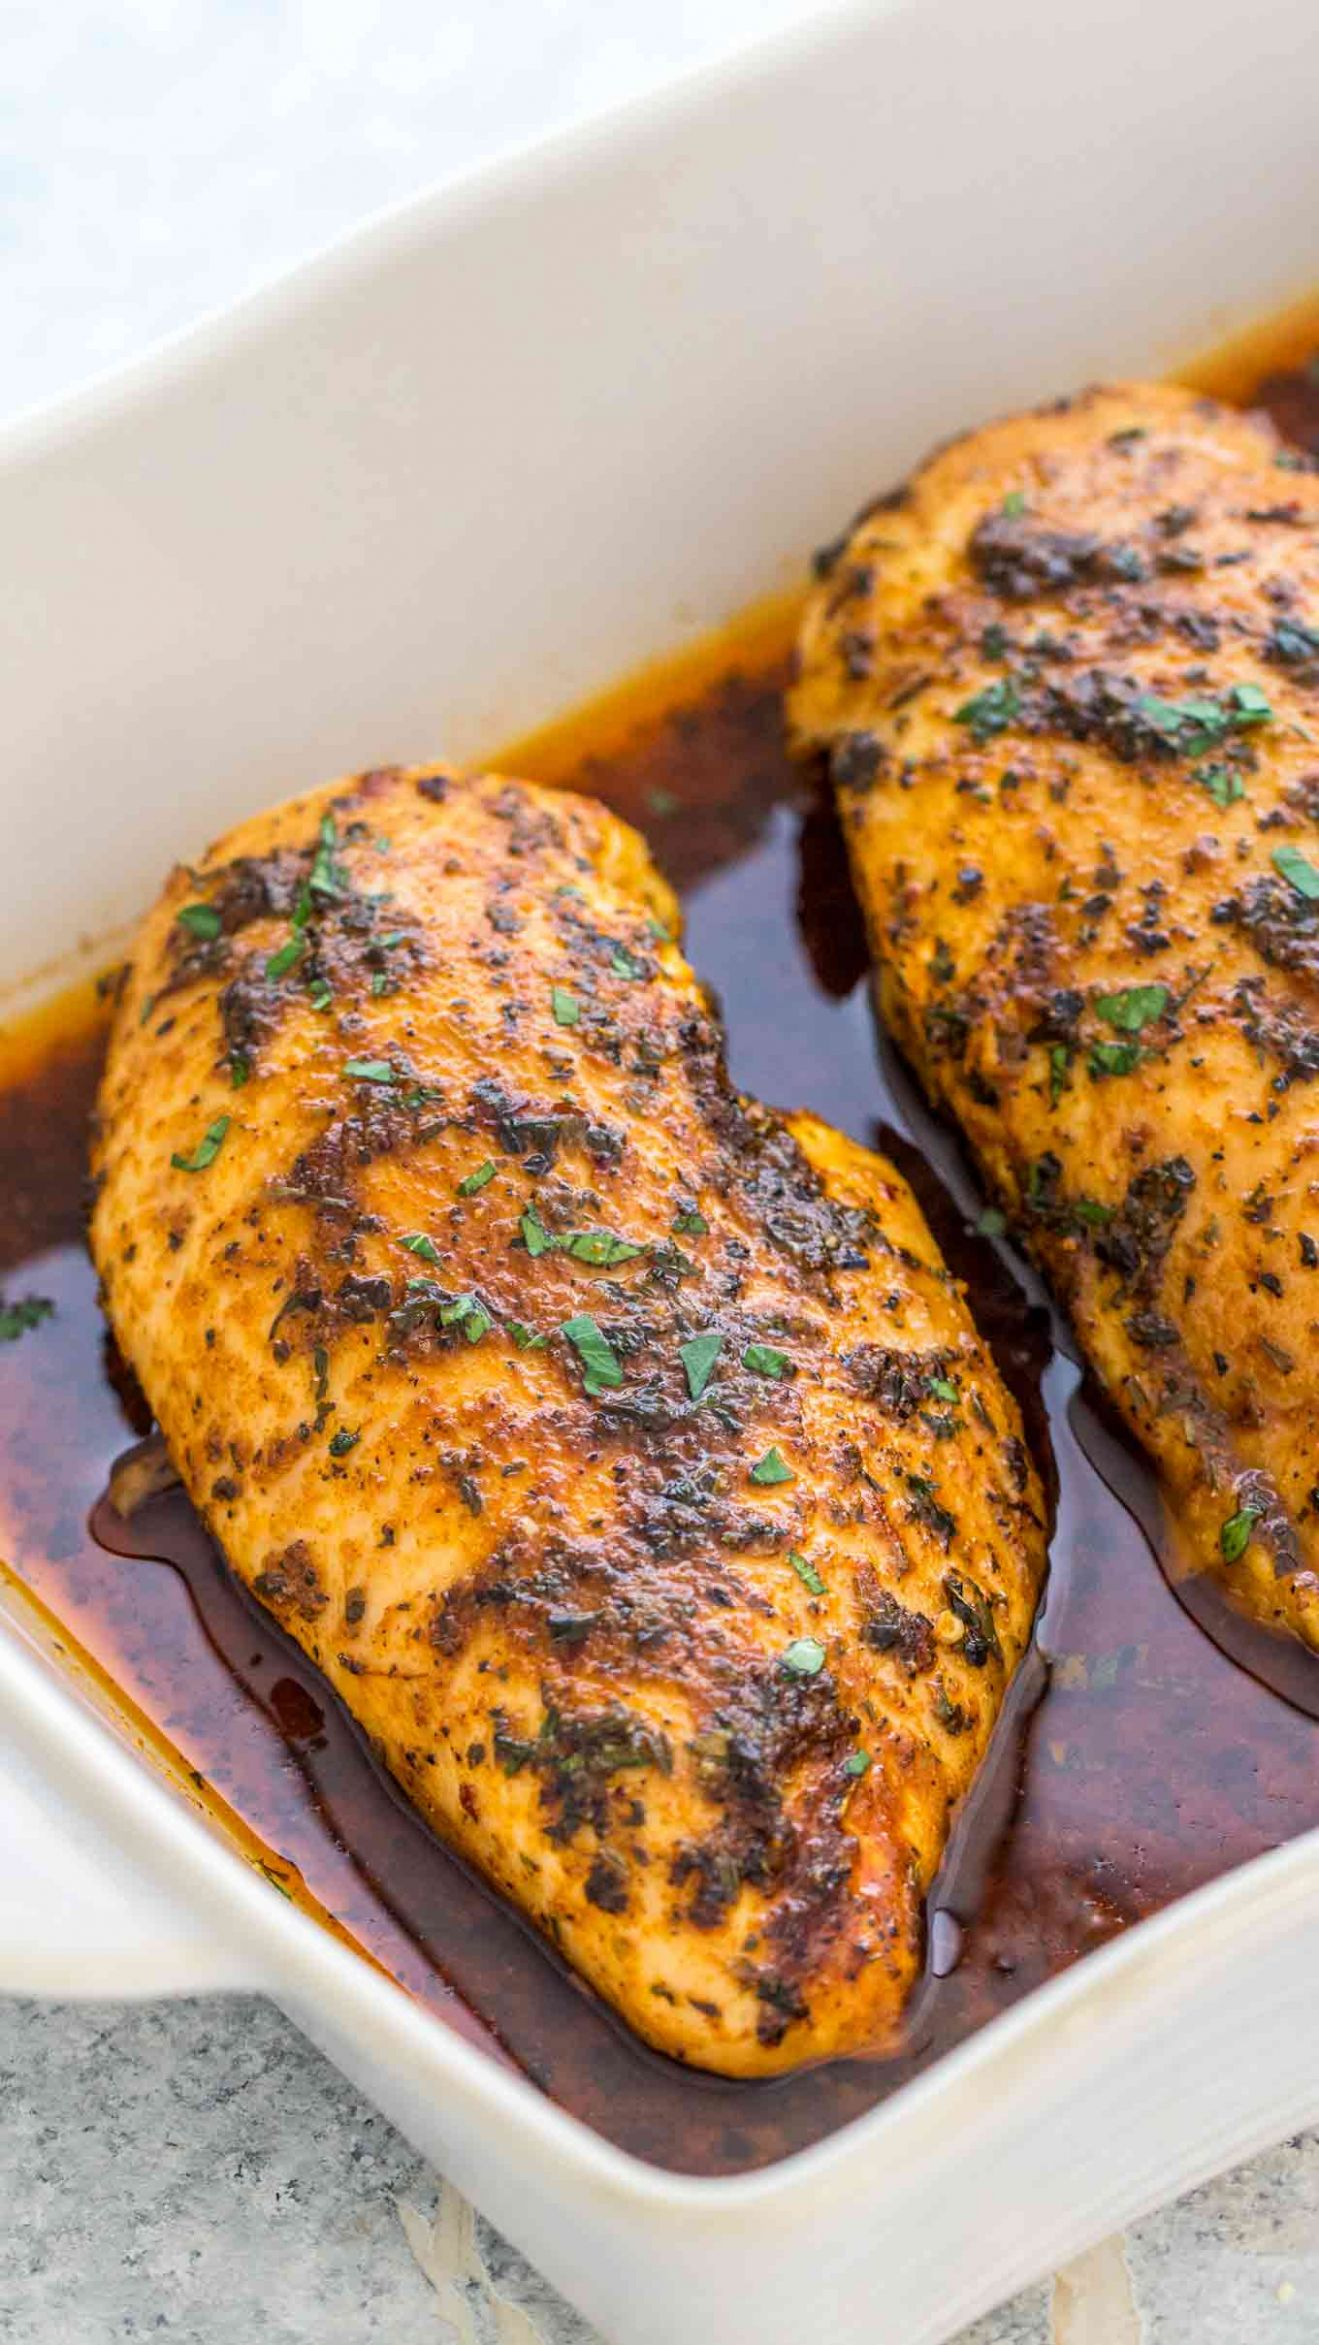 Baked Chicken Breasts - Recipes Chicken Breast In Oven